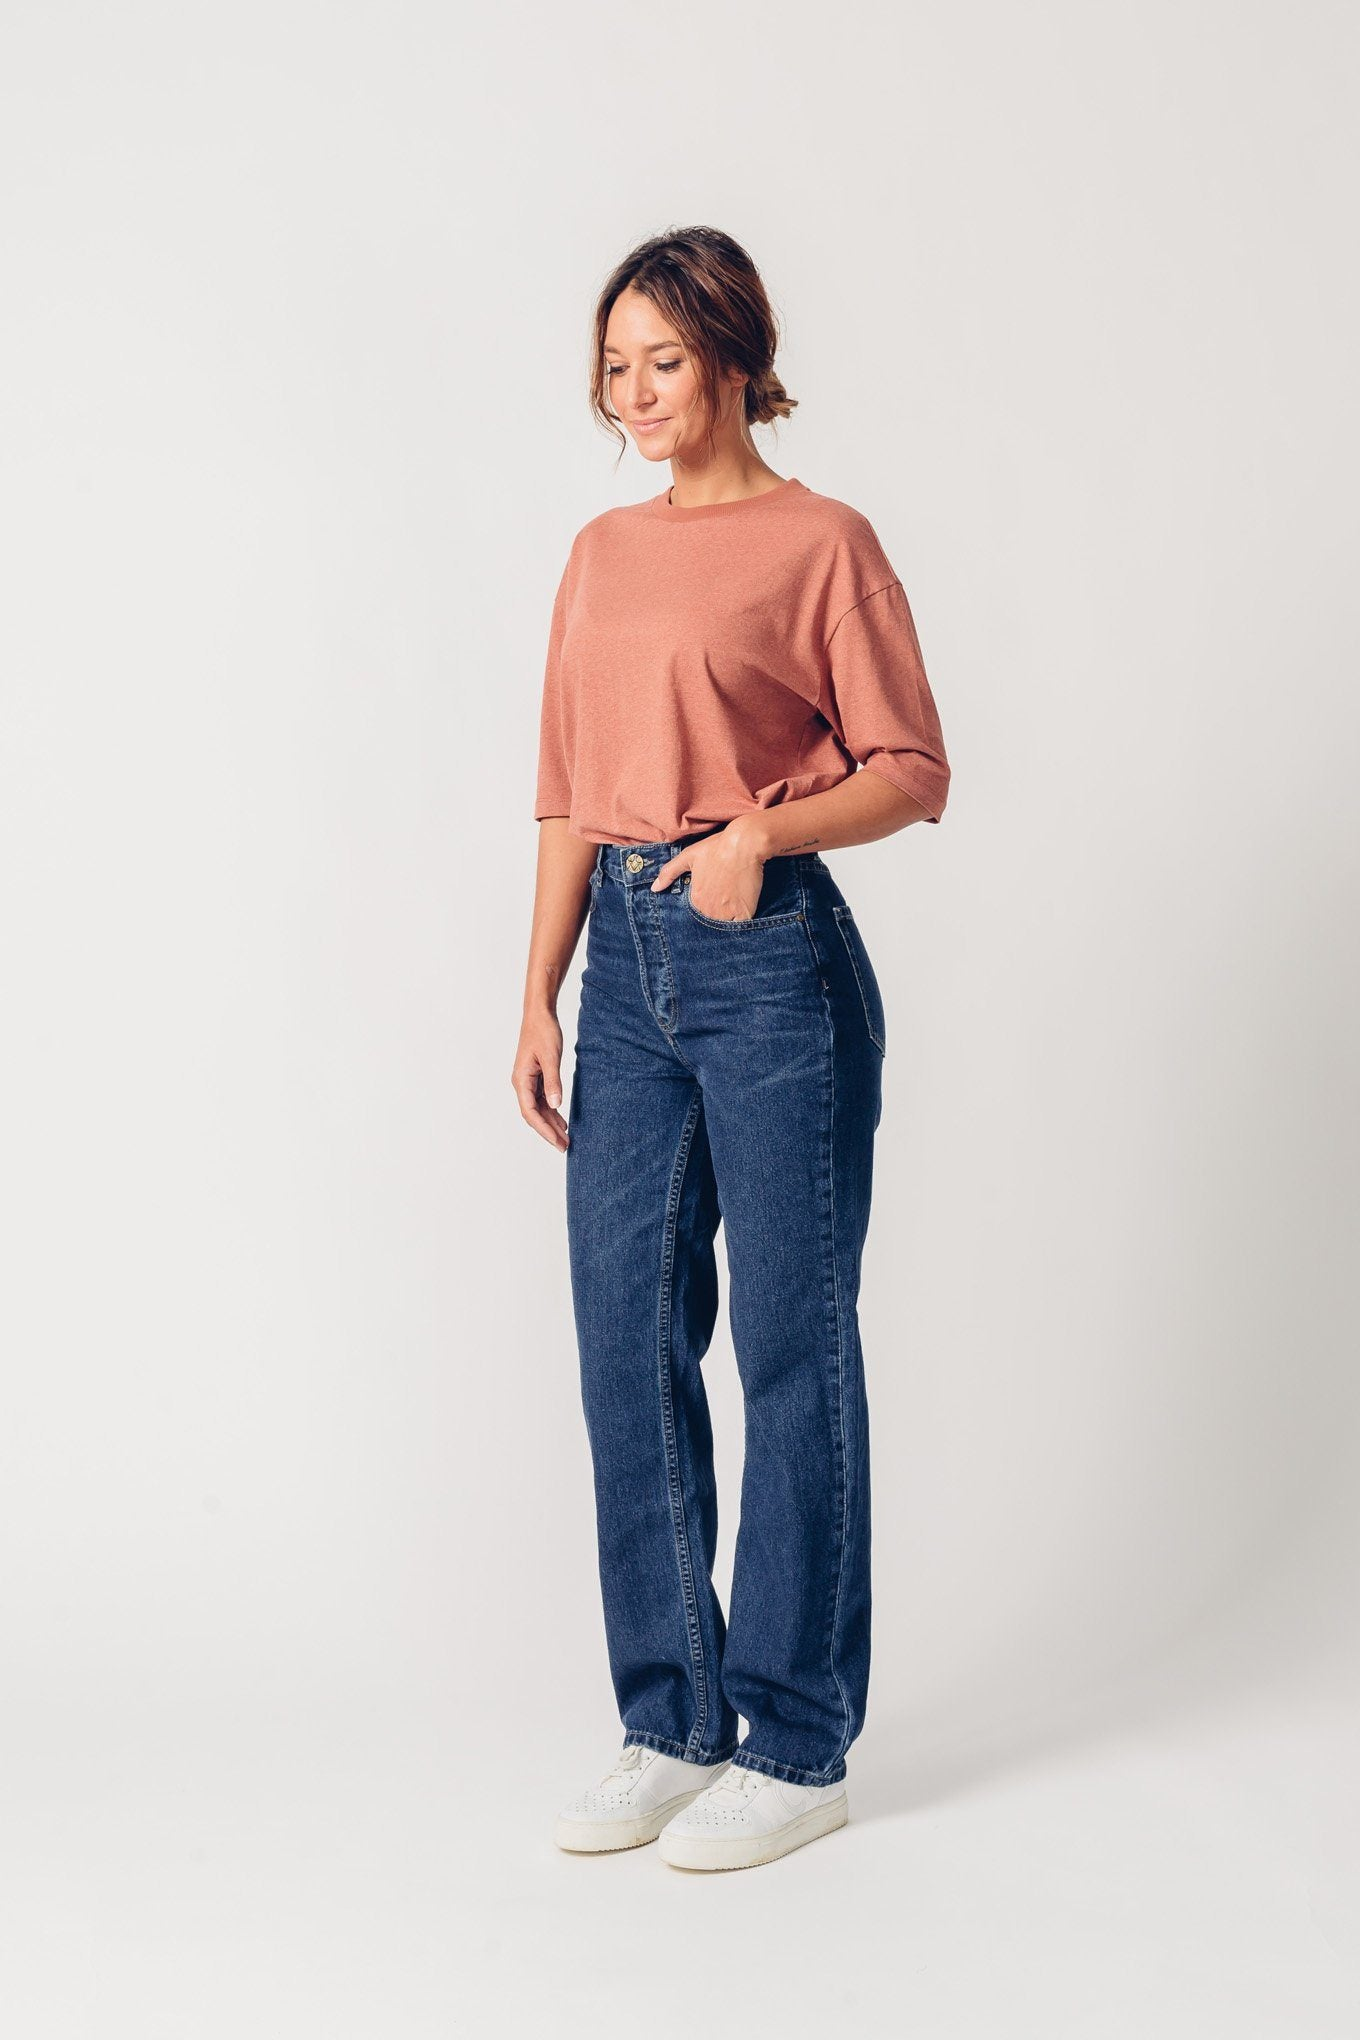 MAYA dark denim organic cotton Jeans by UCM - Komodo Fashion